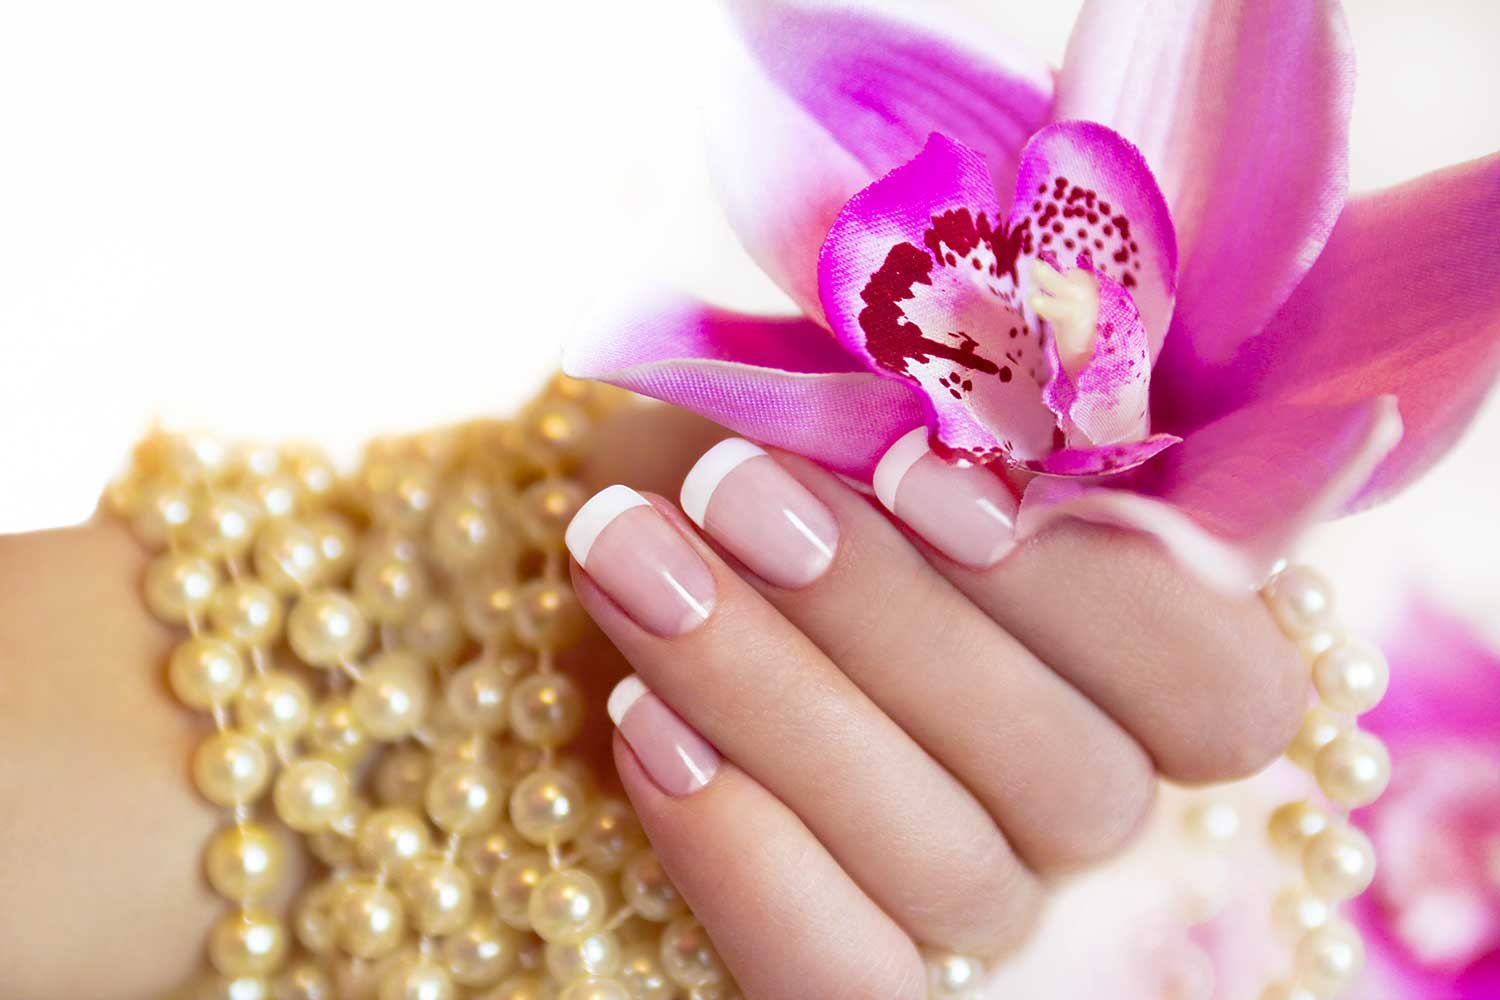 Hand with pink french manicure nails holding flower